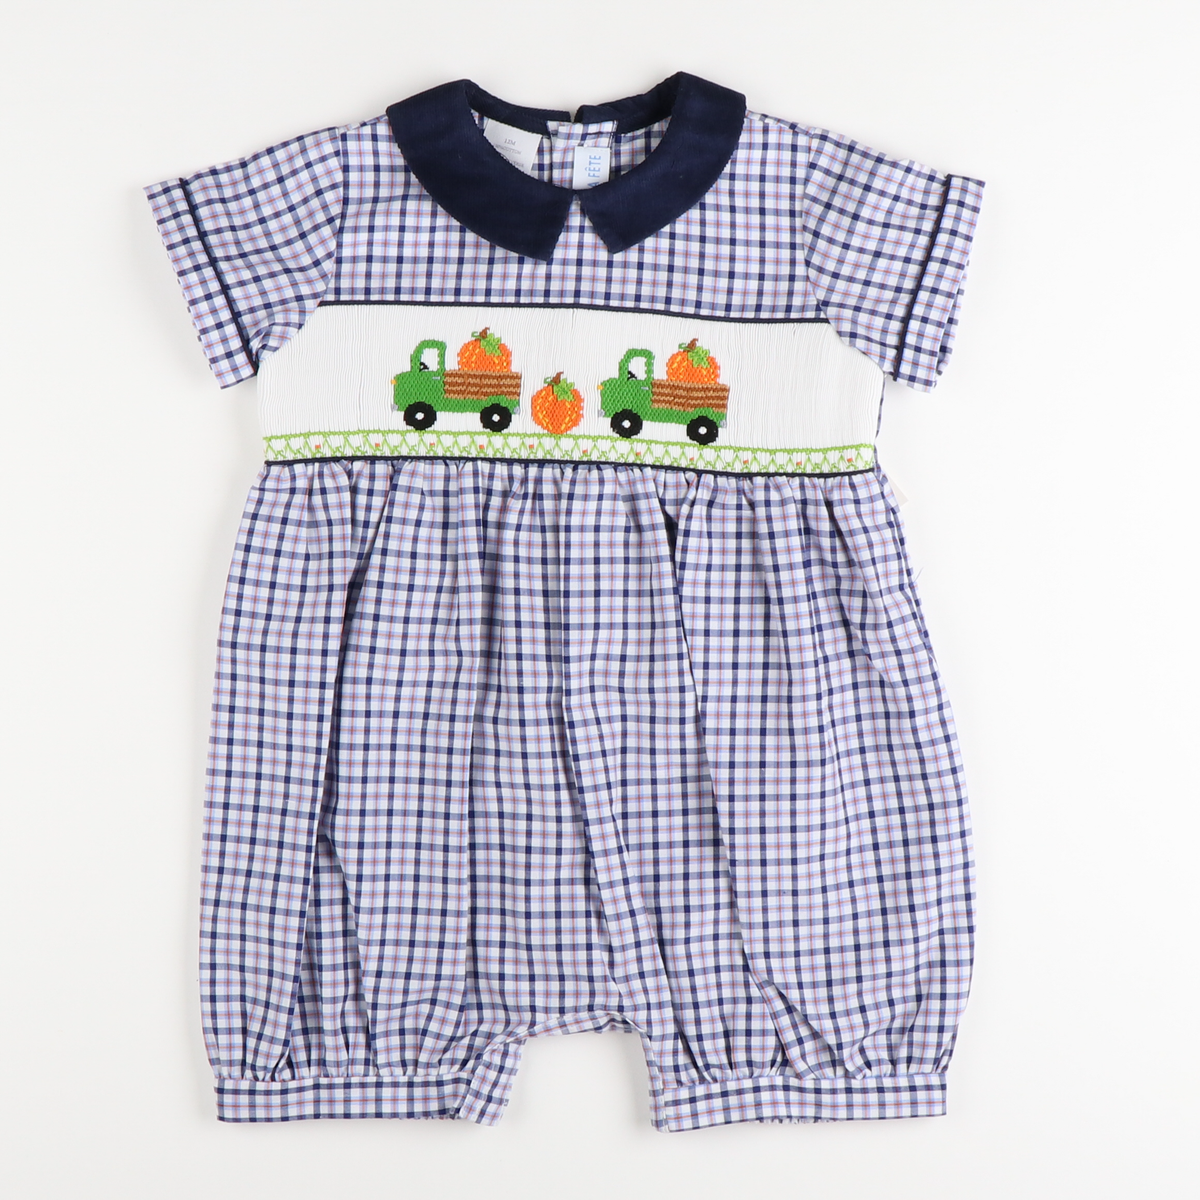 Smocked Trucks with Pumpkins Boy Bubble - Navy Blue and Orange Plaid